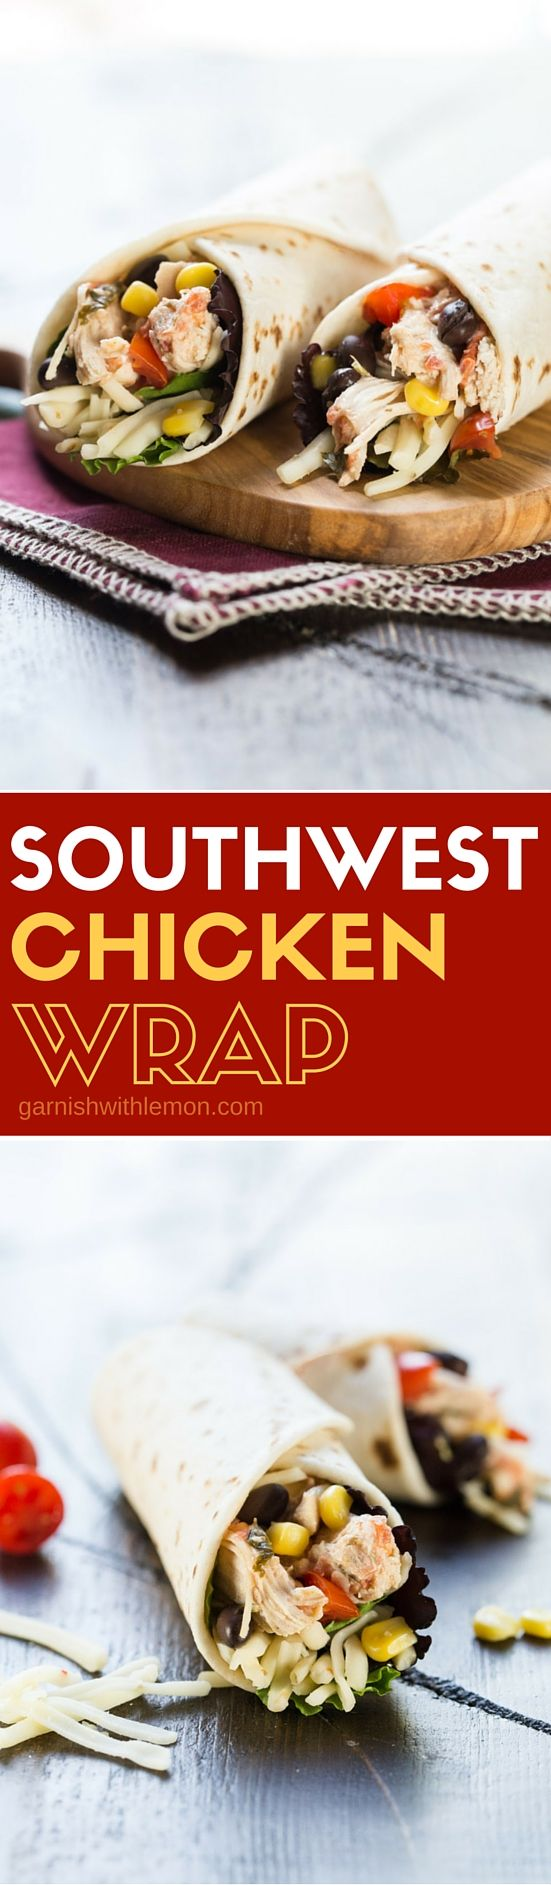 Filled with protein, this Southwest Chicken Wrap recipe is the perfect way to spice up your lunch routine!